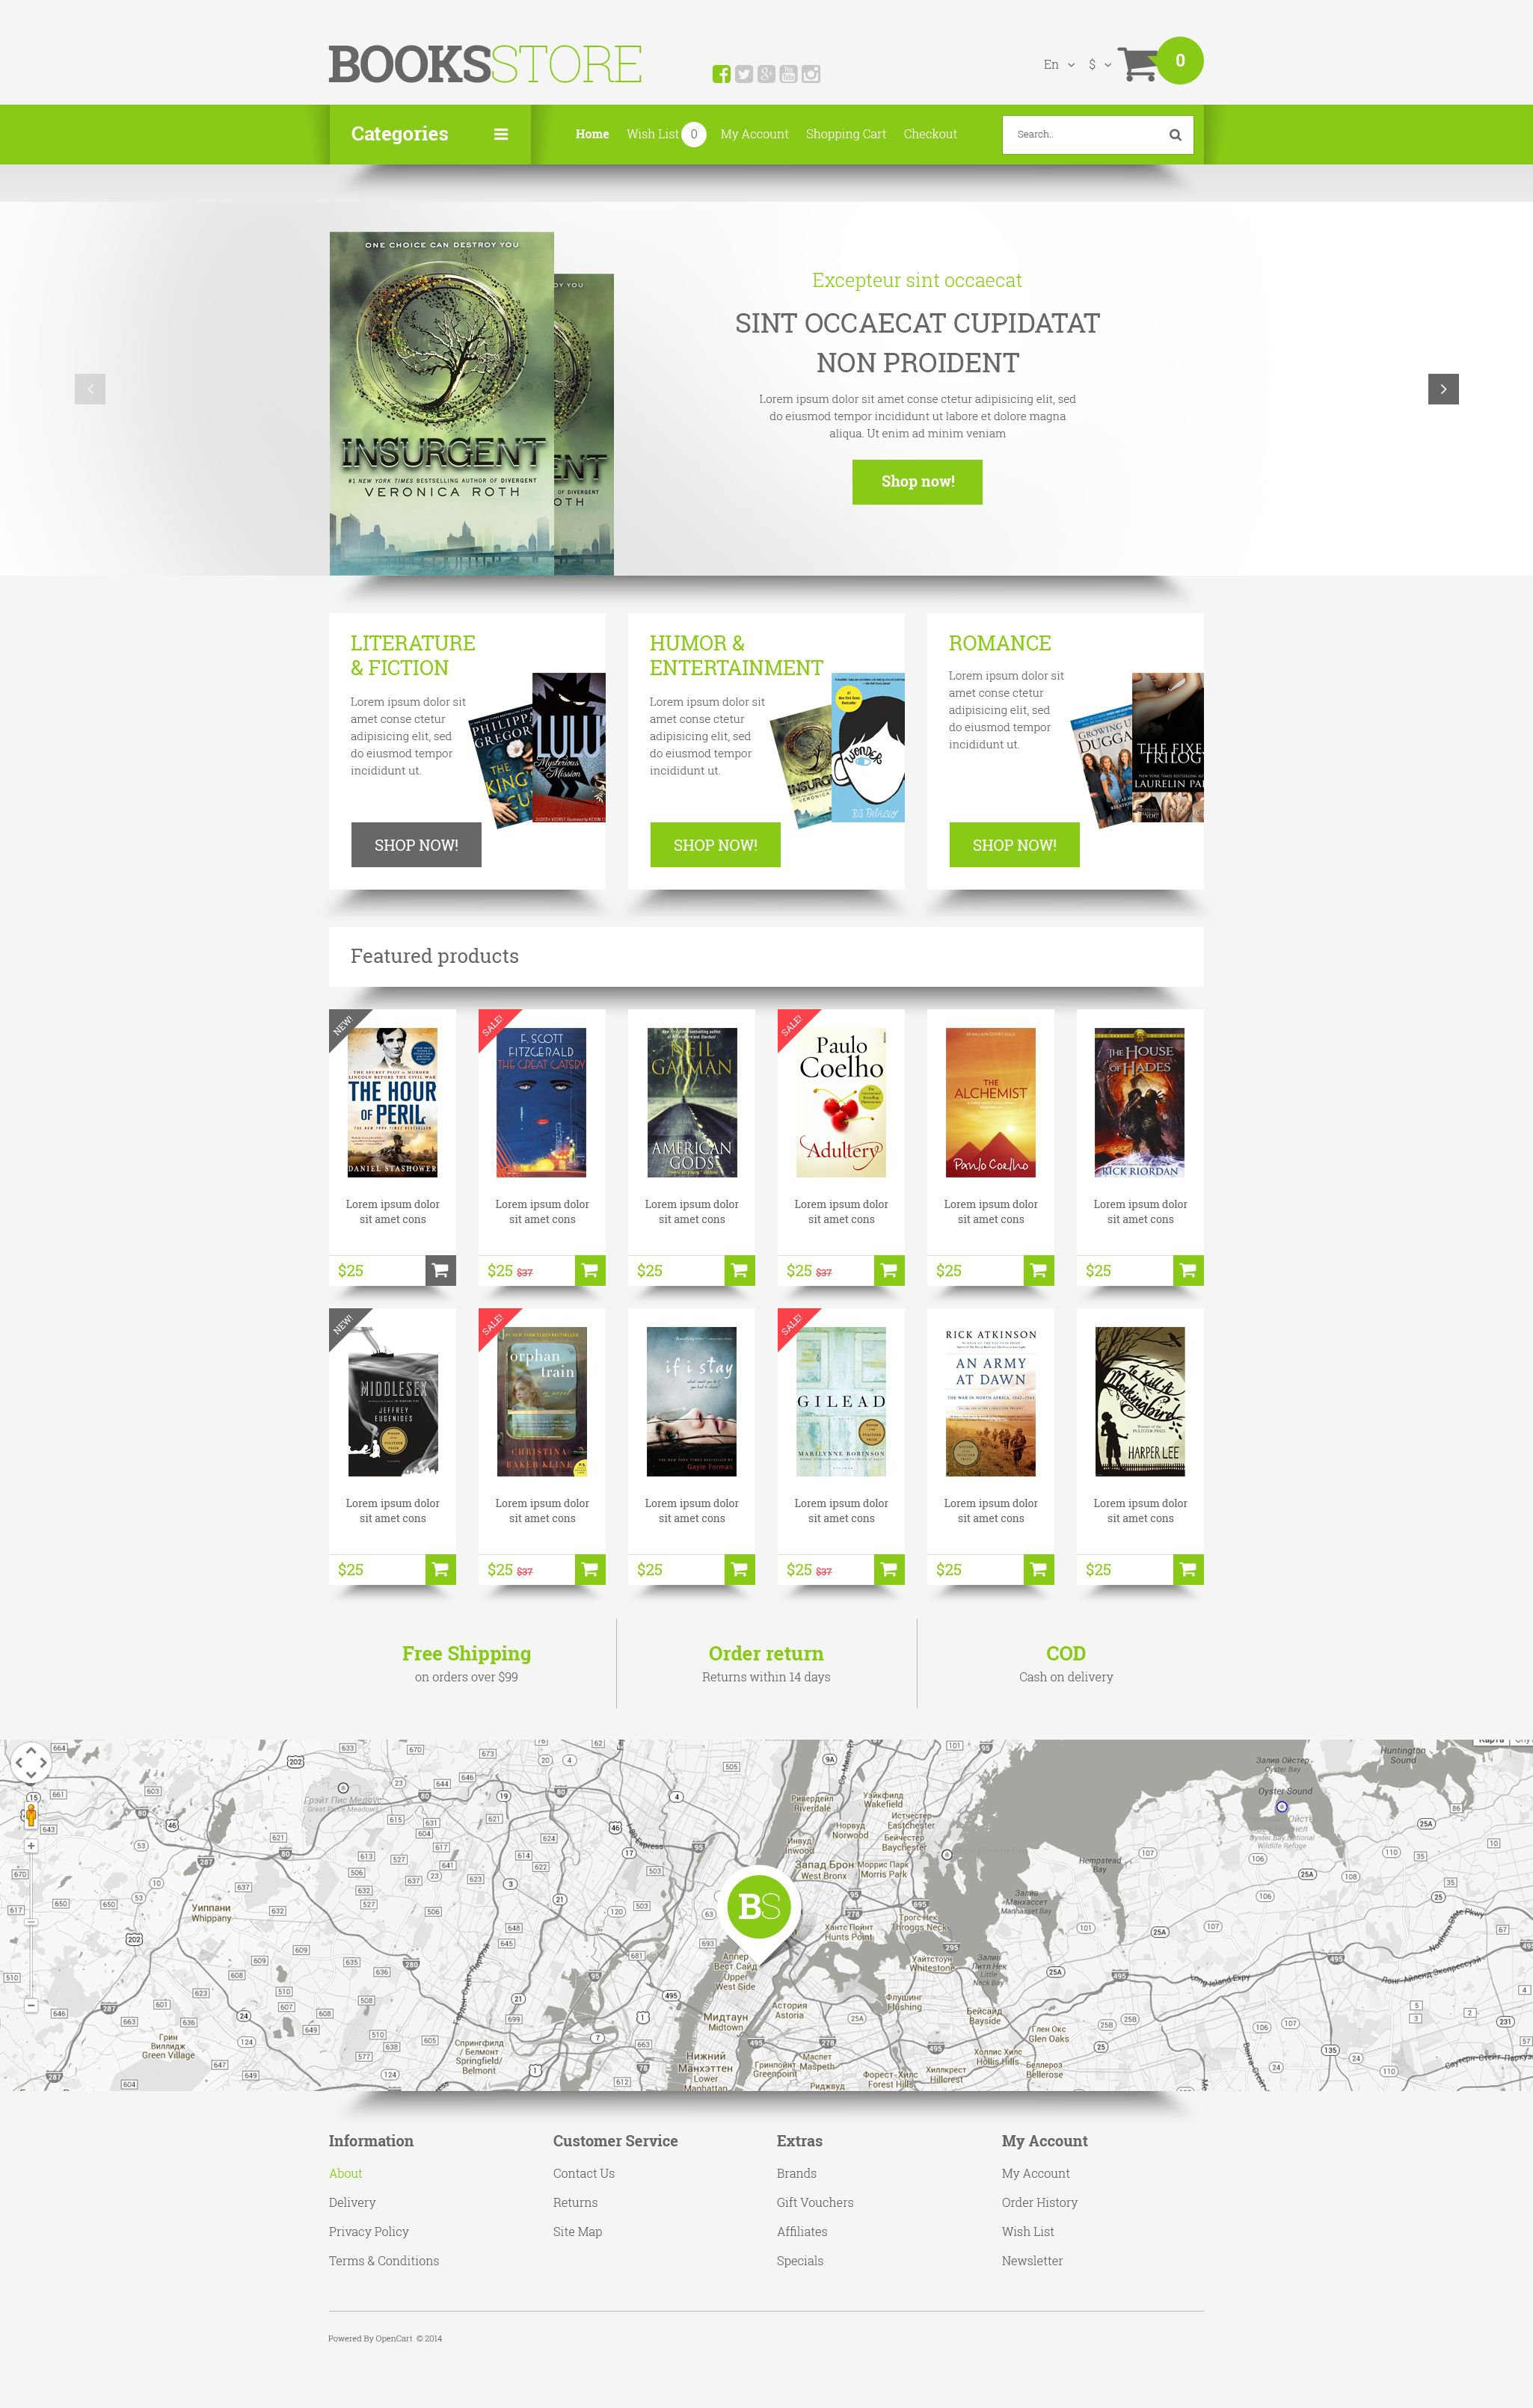 The Books Store OpenCart Design 54657, one of the best OpenCart templates of its kind (books, most popular), also known as books store OpenCart template, books OpenCart template, bookers OpenCart template, publishing OpenCart template, book OpenCart template, books OpenCart template, publish OpenCart template, publisher OpenCart template, author OpenCart template, press OpenCart template, story OpenCart template, novel OpenCart template, fiction OpenCart template, detective OpenCart template, science and related with books store, books, bookers, publishing, book, books, publish, publisher, author, press, story, novel, fiction, detective, science, etc.